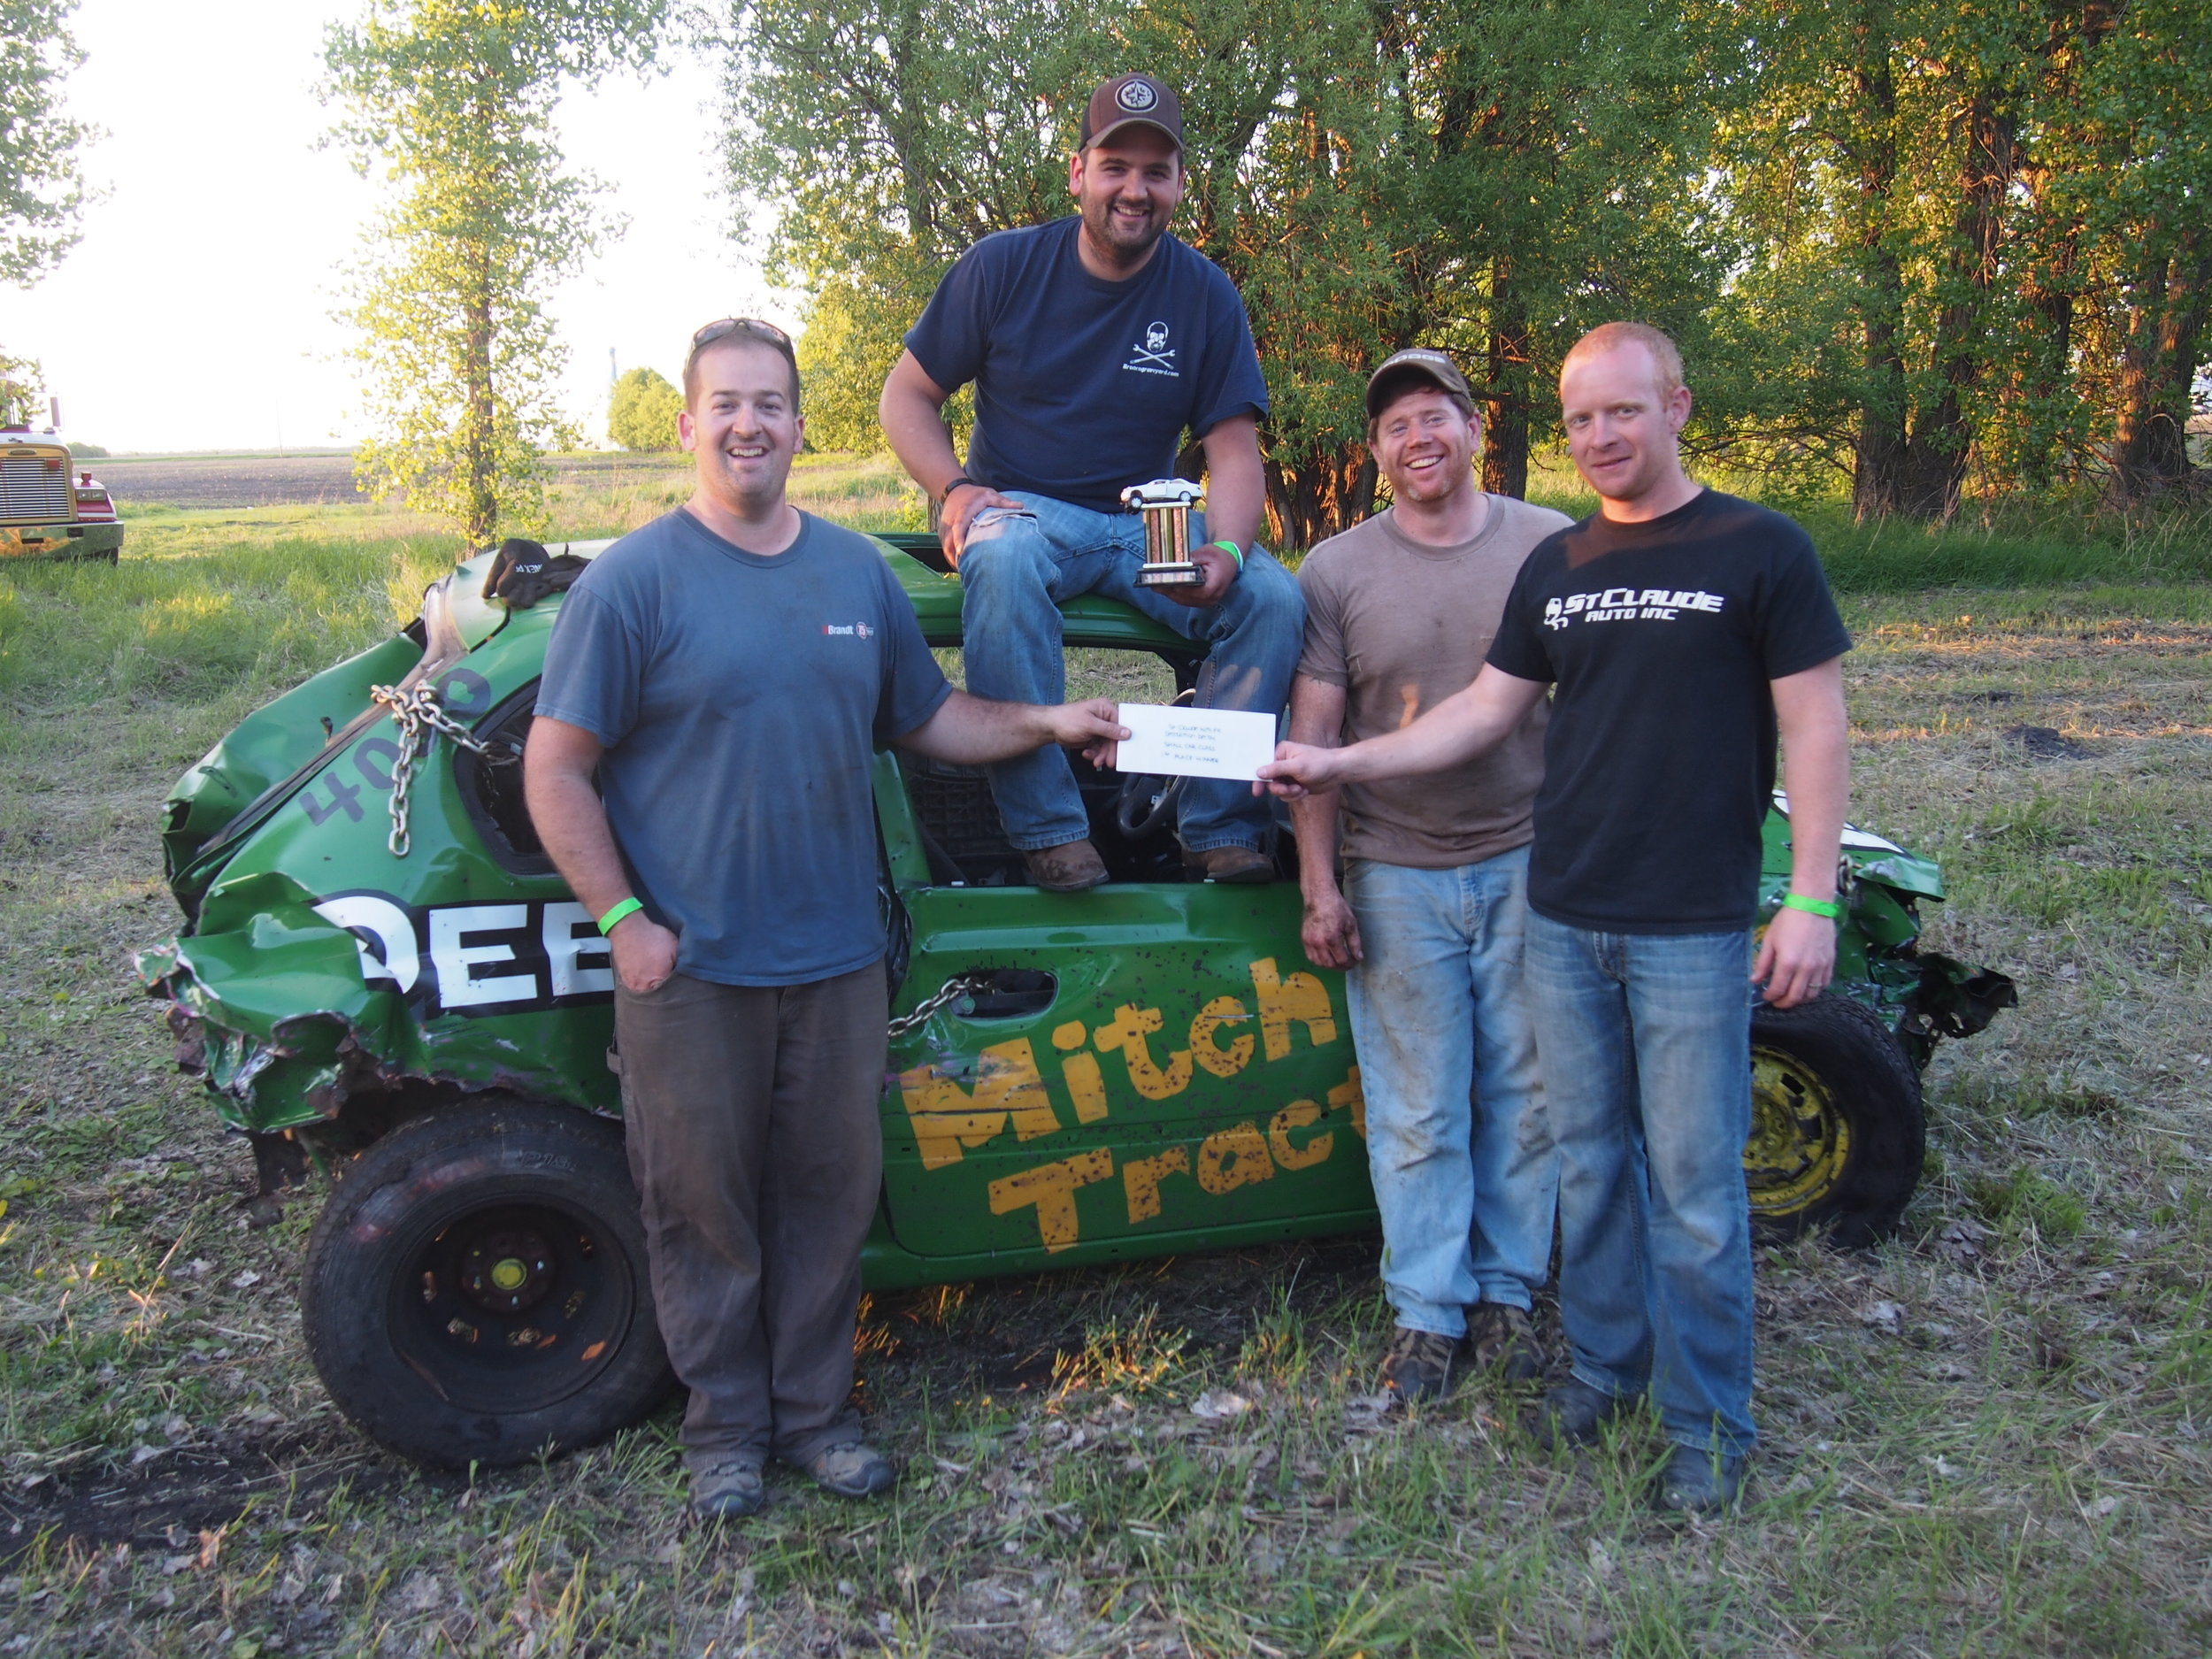 Ryan Piche - 1st - Small Car 2014